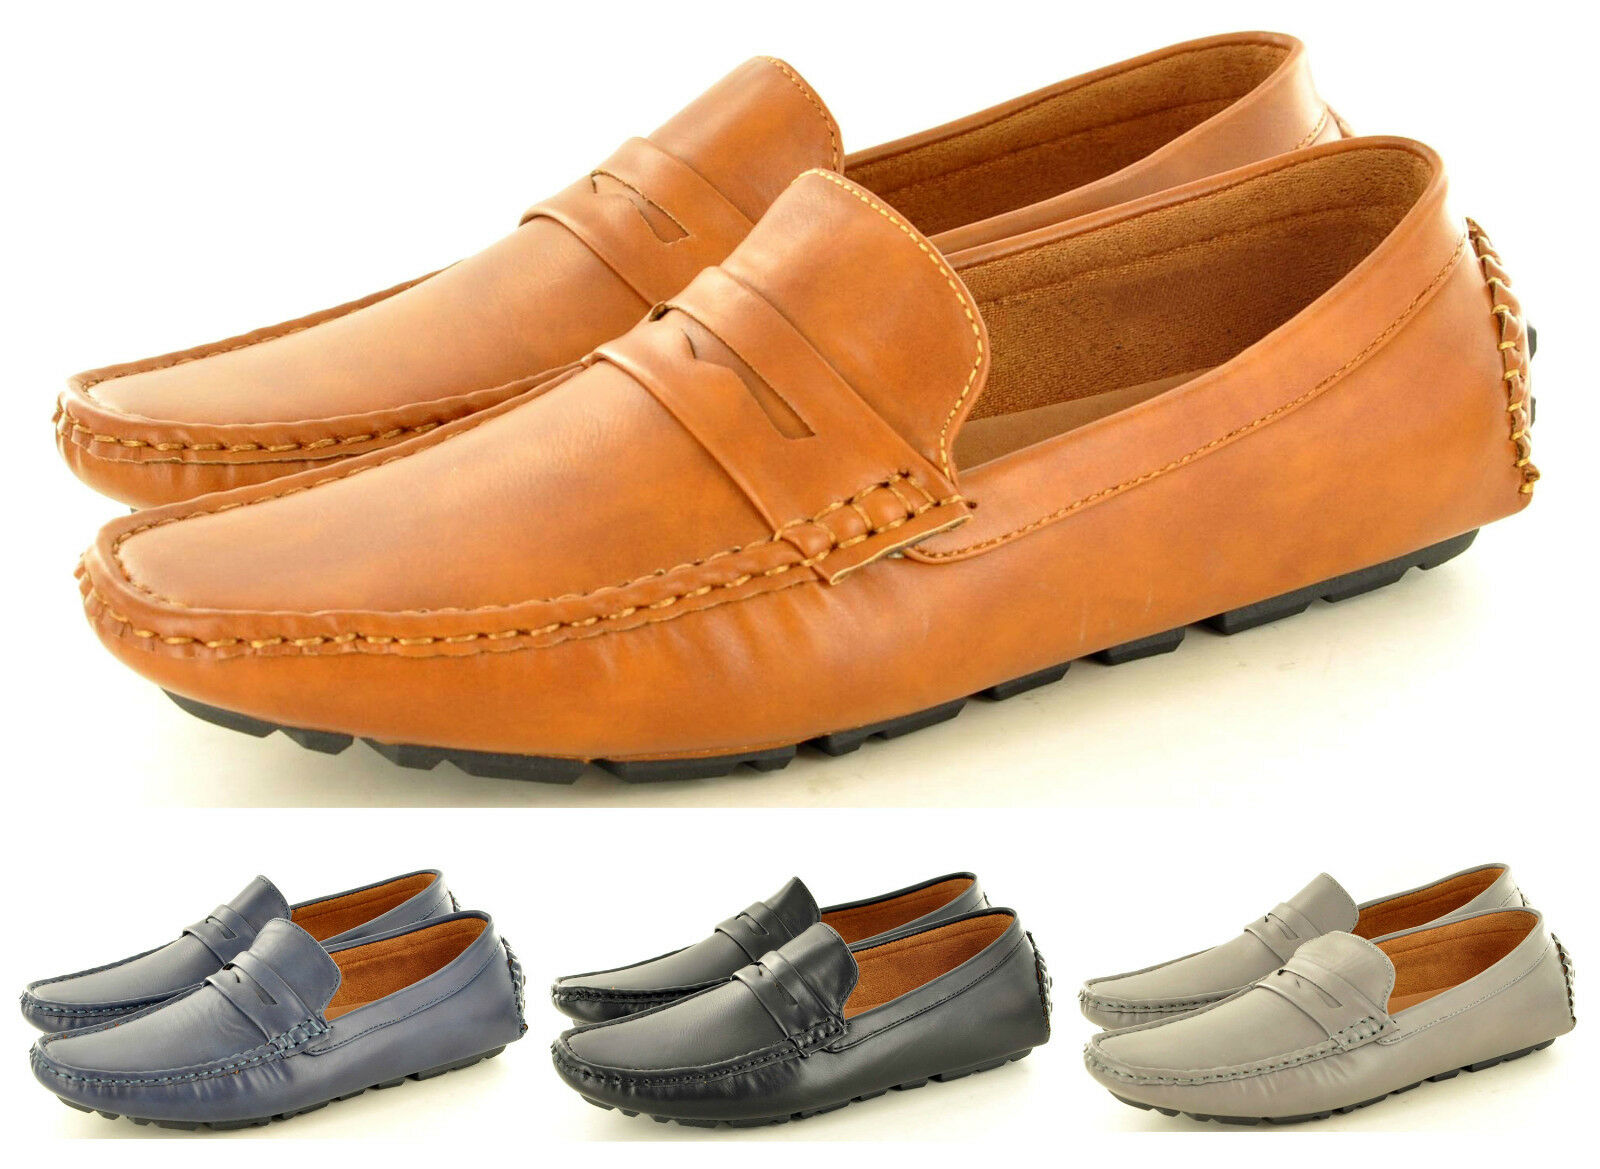 Driving Shoes For Wide Feet